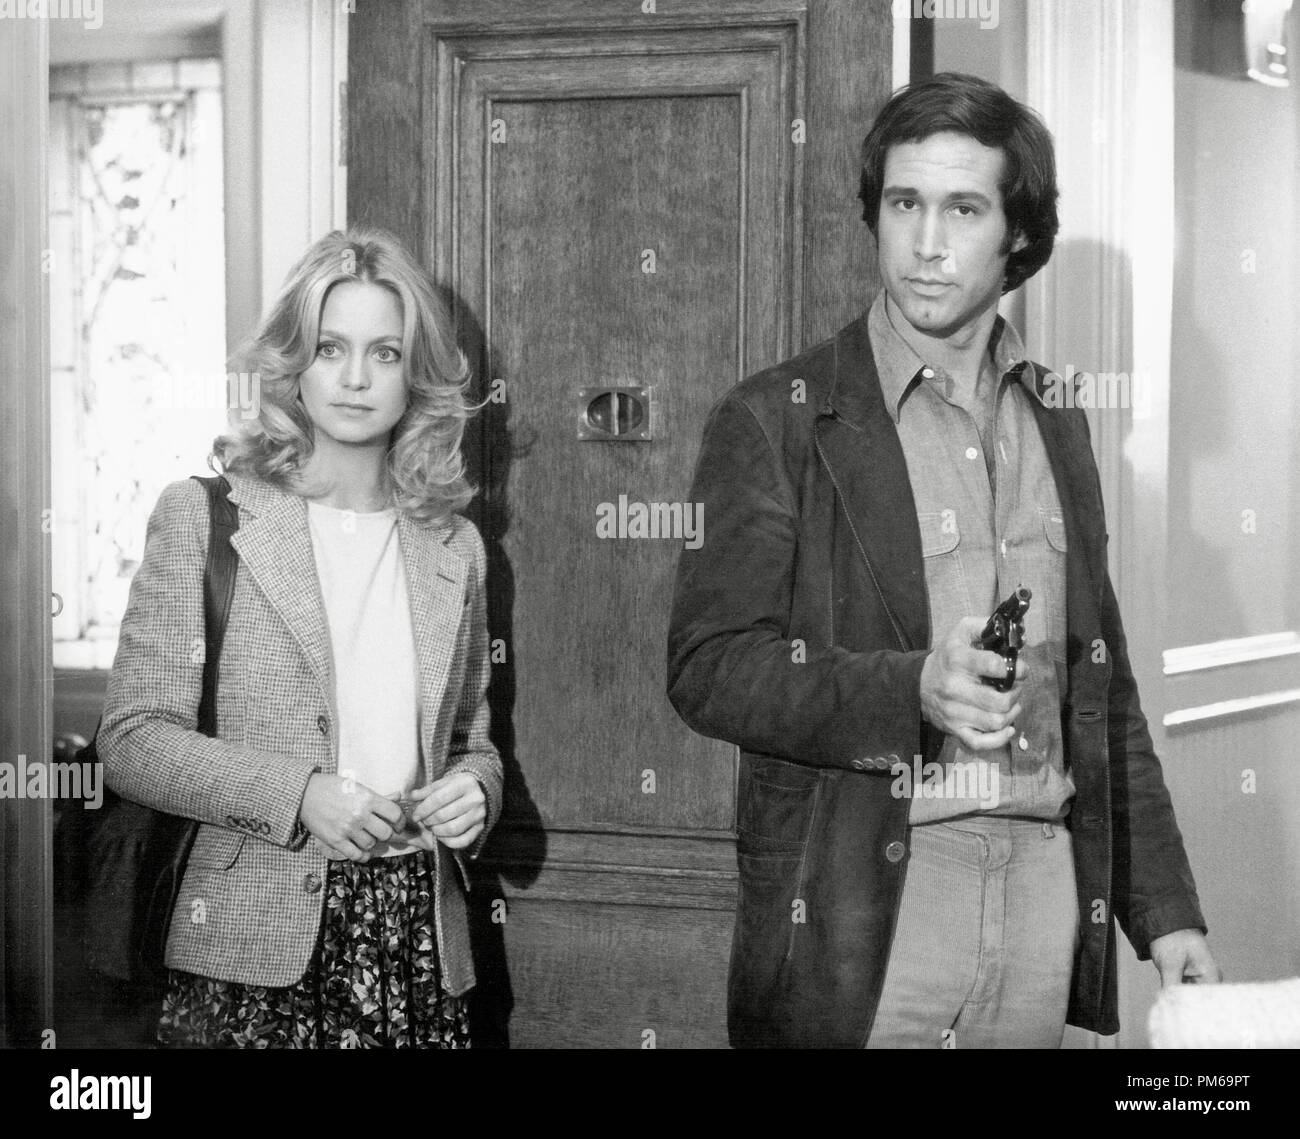 Goldie Hawn and Chevy Chase, 'Foul Play' 1978 Paramount File Reference # 31316_380THA - Stock Image